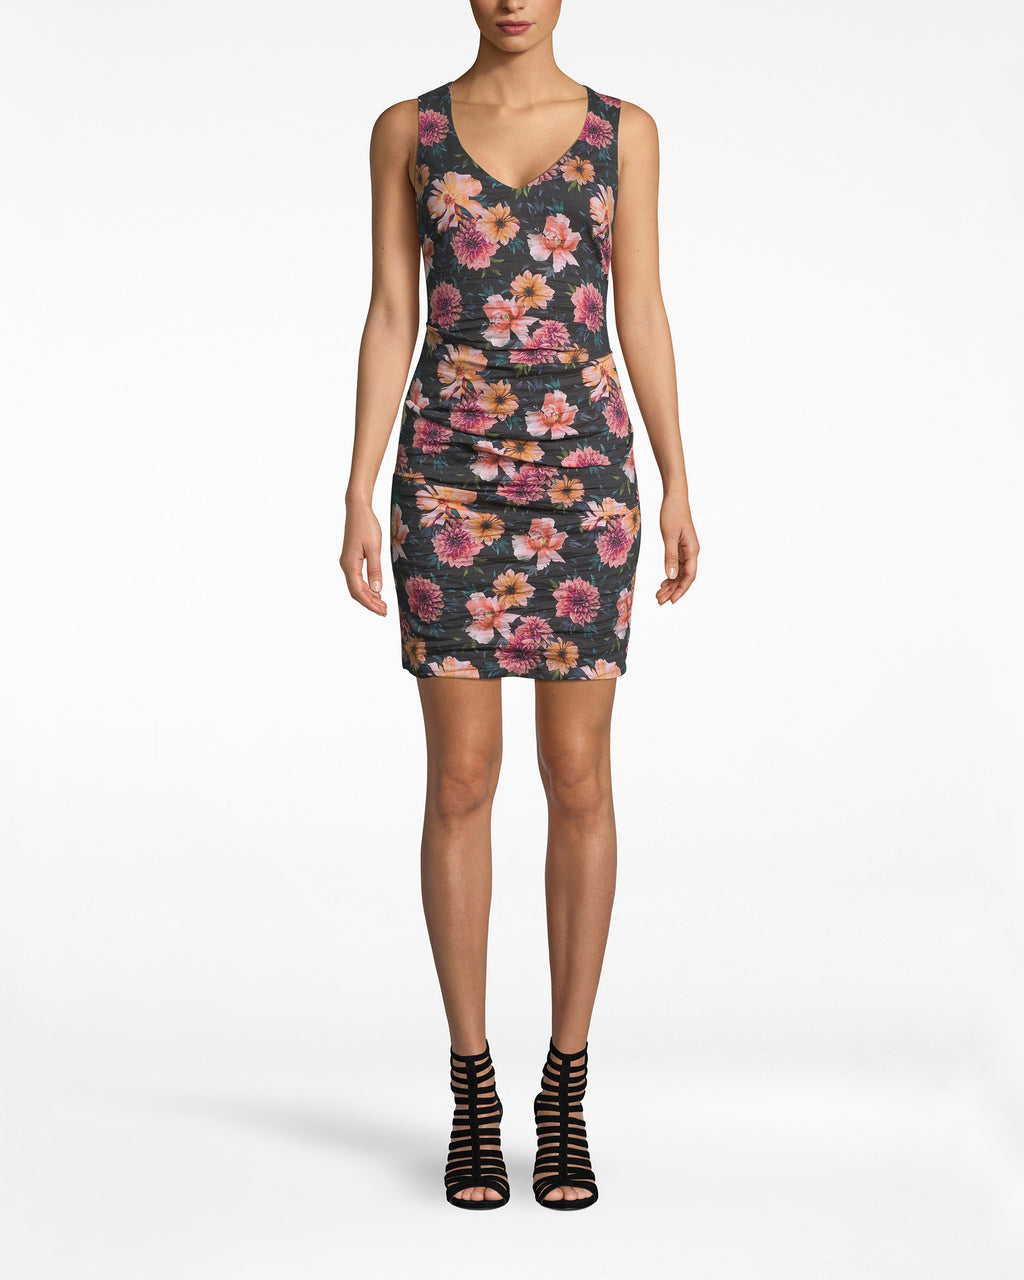 CC10198 - DAHLIA BLOOM COTTON METAL RACERBACK DRESS - dresses - short - Catch that back? This racerback, ruched dress balances a feminine print with a sleek silhouette. Pair with cool booties. Exposed back zipper, lined.